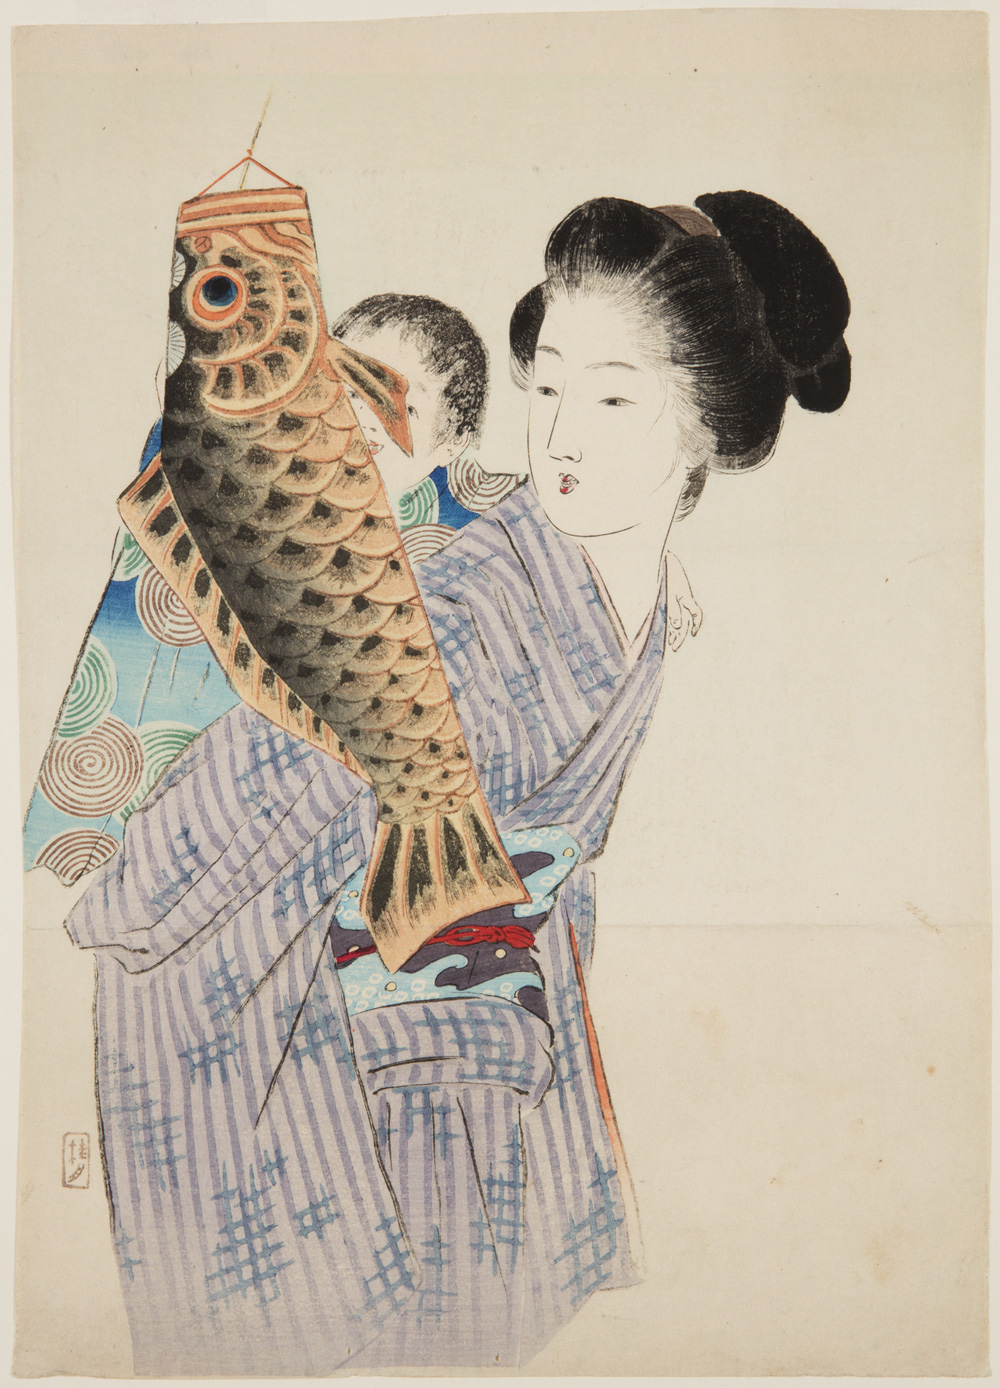 Japanese print of a woman dressed in traditional clothes and a baby on her back., the child gazes at the carp shaped toy he is holding.